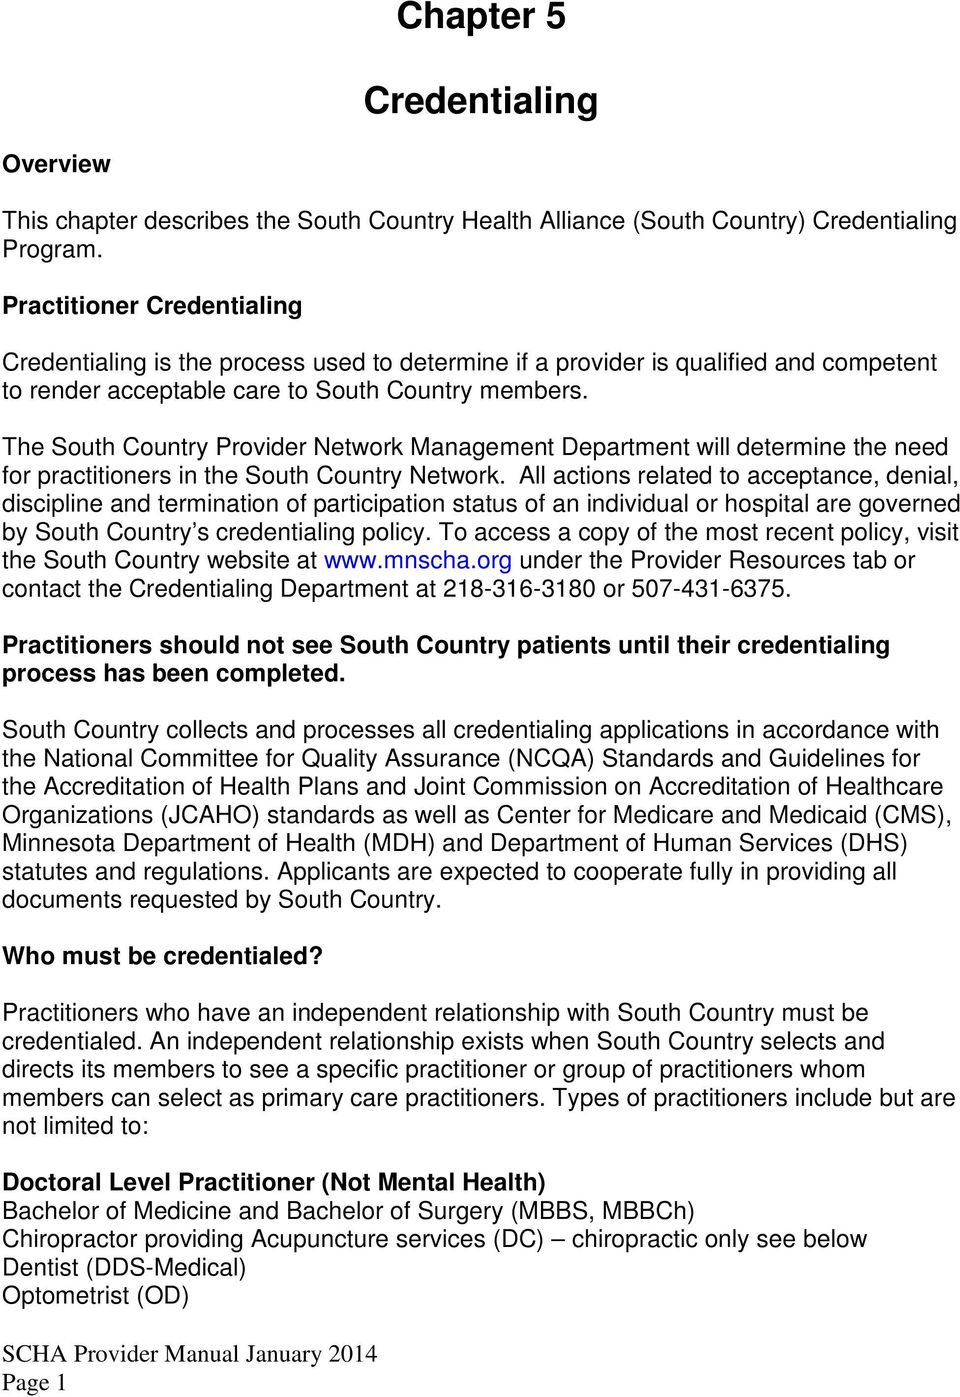 The South Country Provider Network Management Department will determine the need for practitioners in the South Country Network.